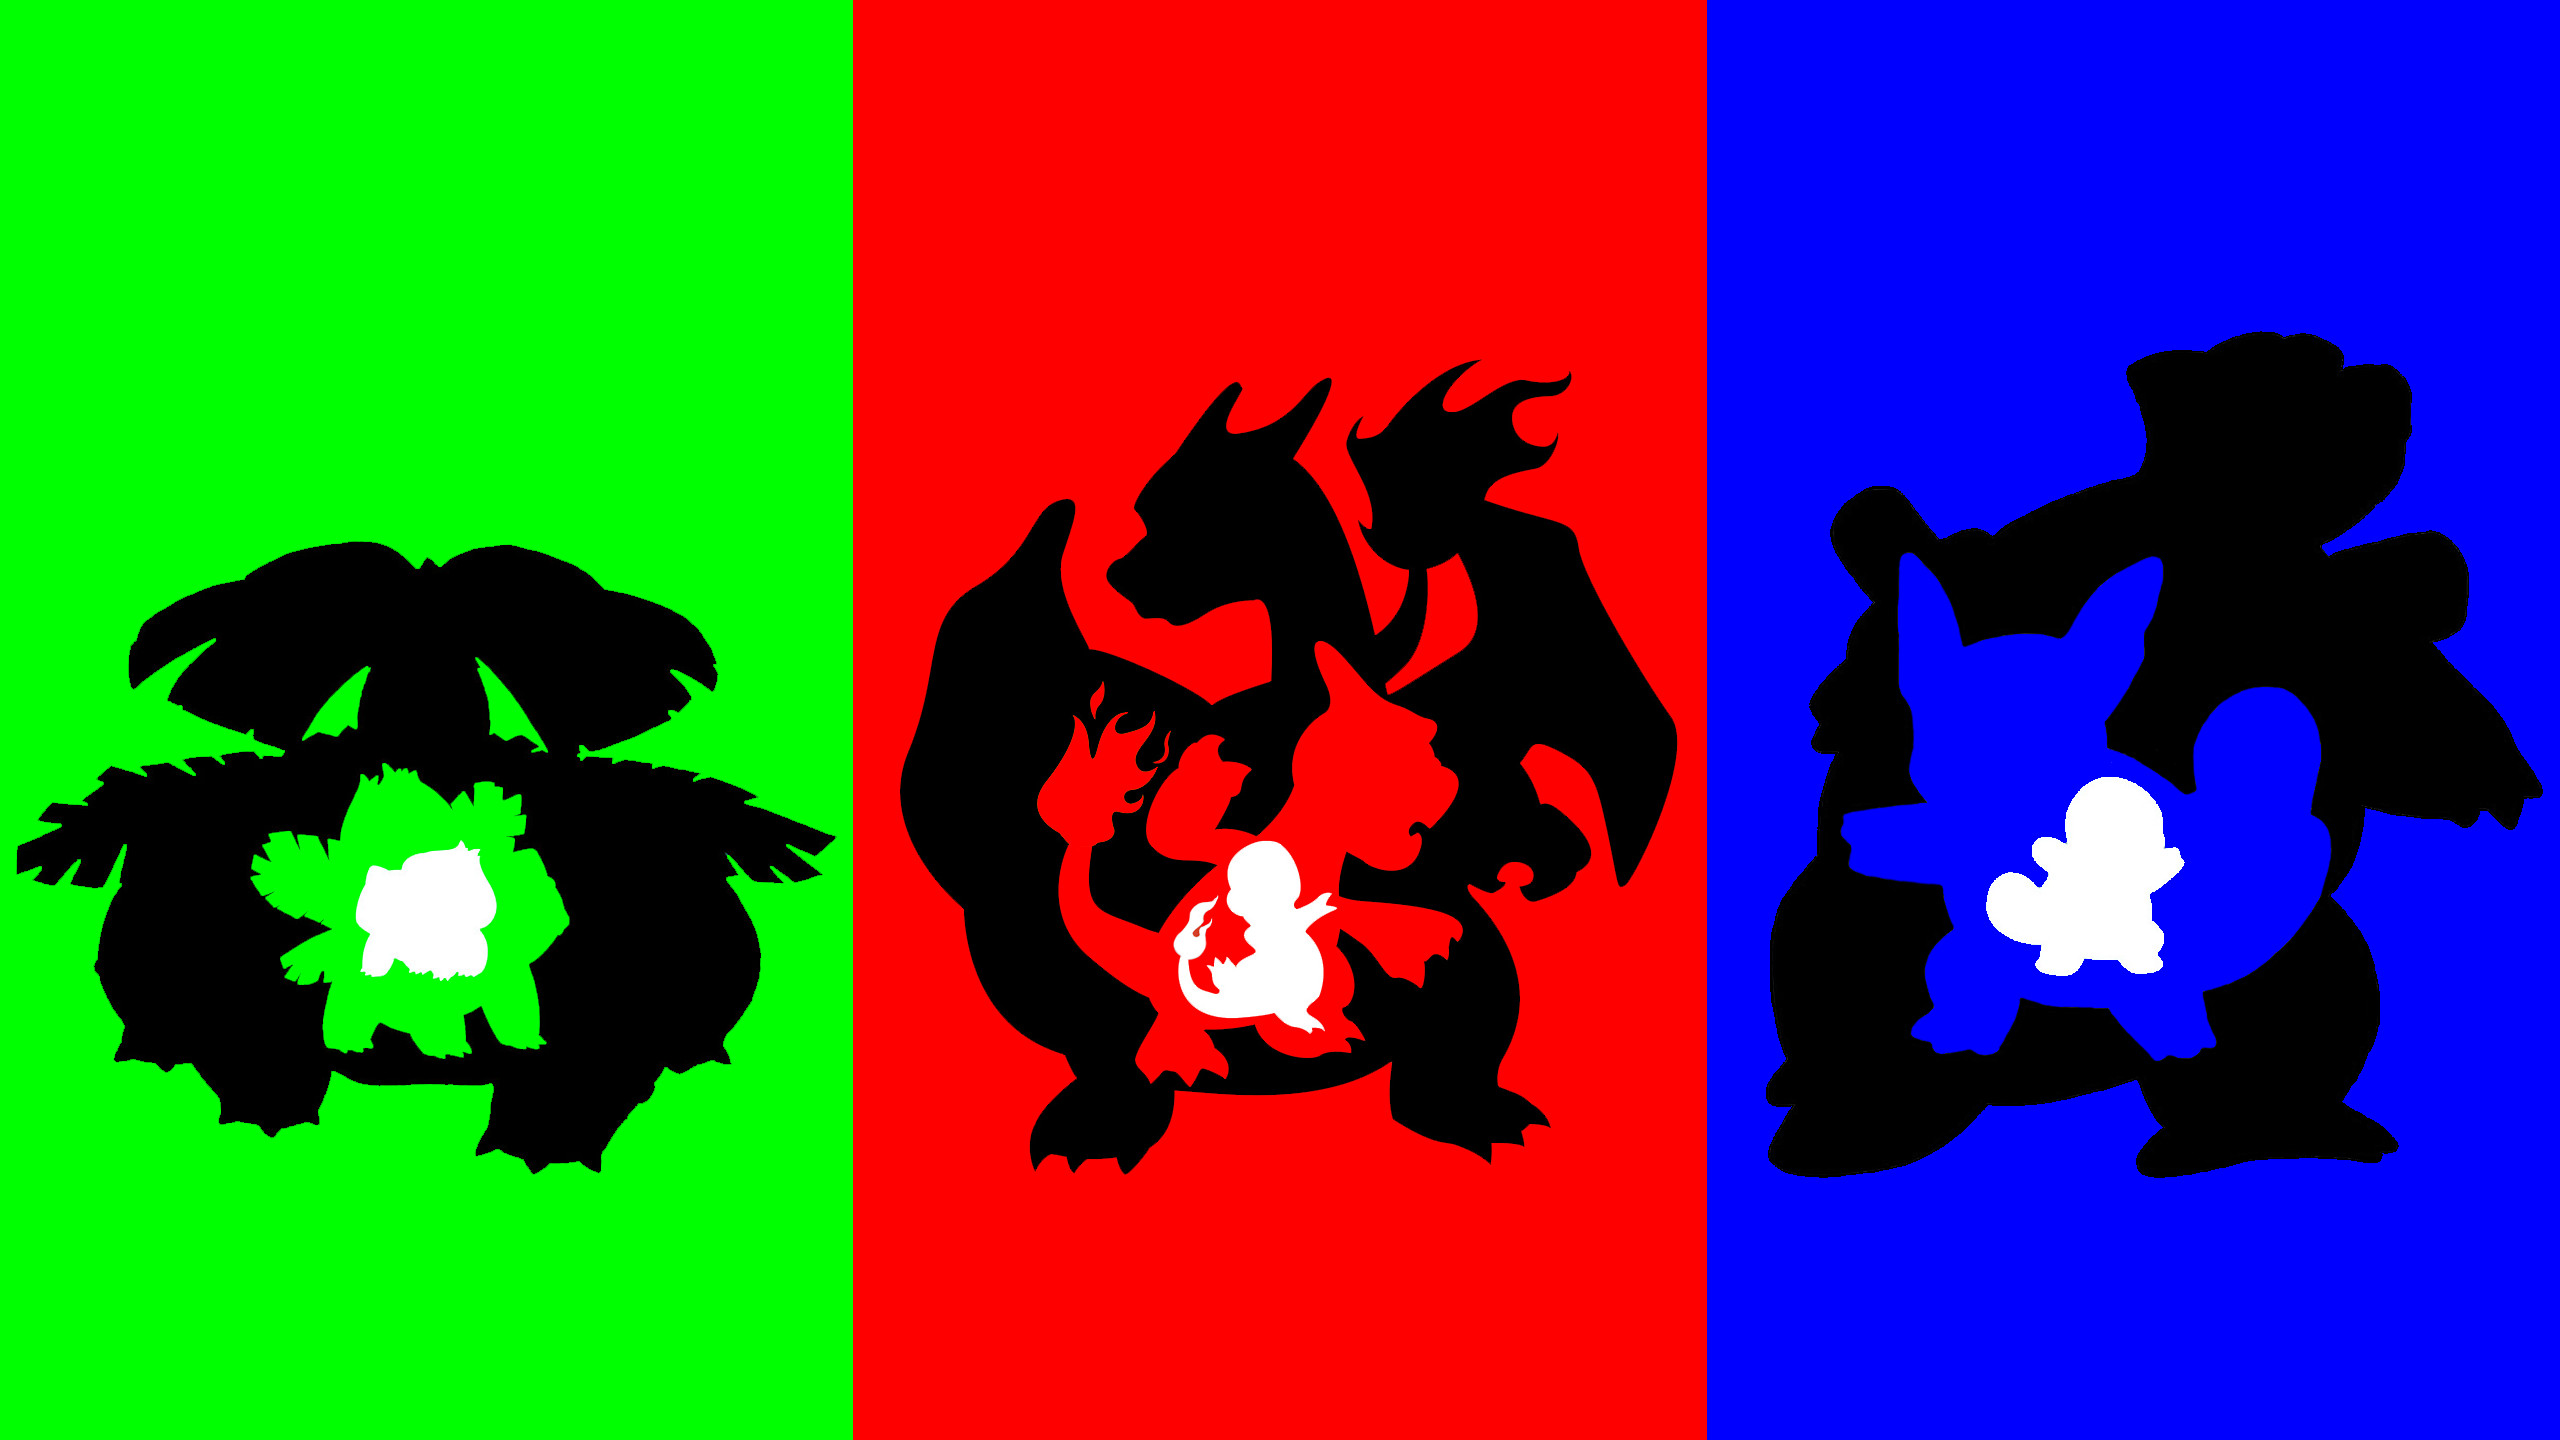 Pokemon wallpaper here in high quality   HD Wallpapers   Pinterest    Wallpaper and Hd wallpaper